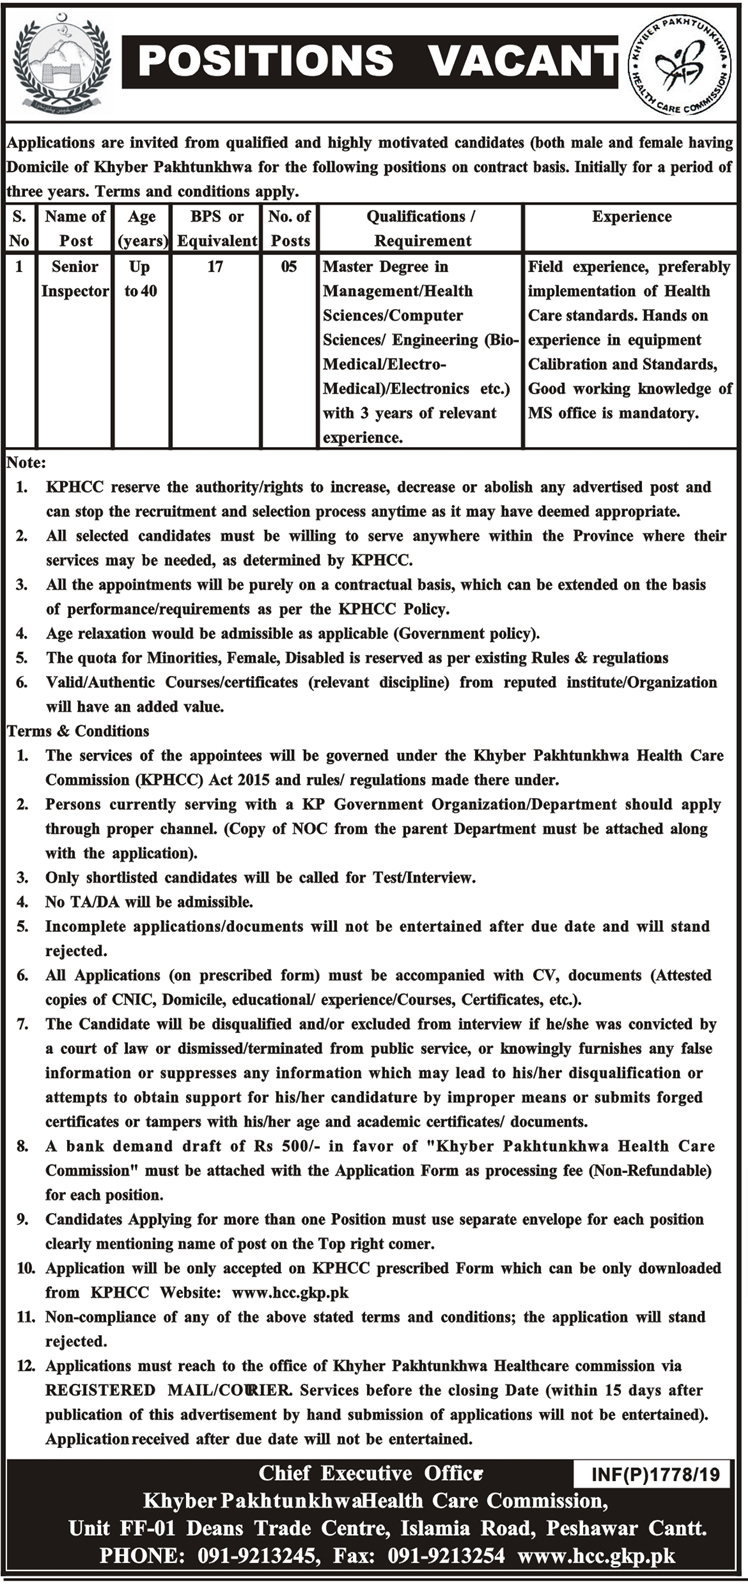 Khyber Pakhtunkhwa Health care Commission Inspector Job